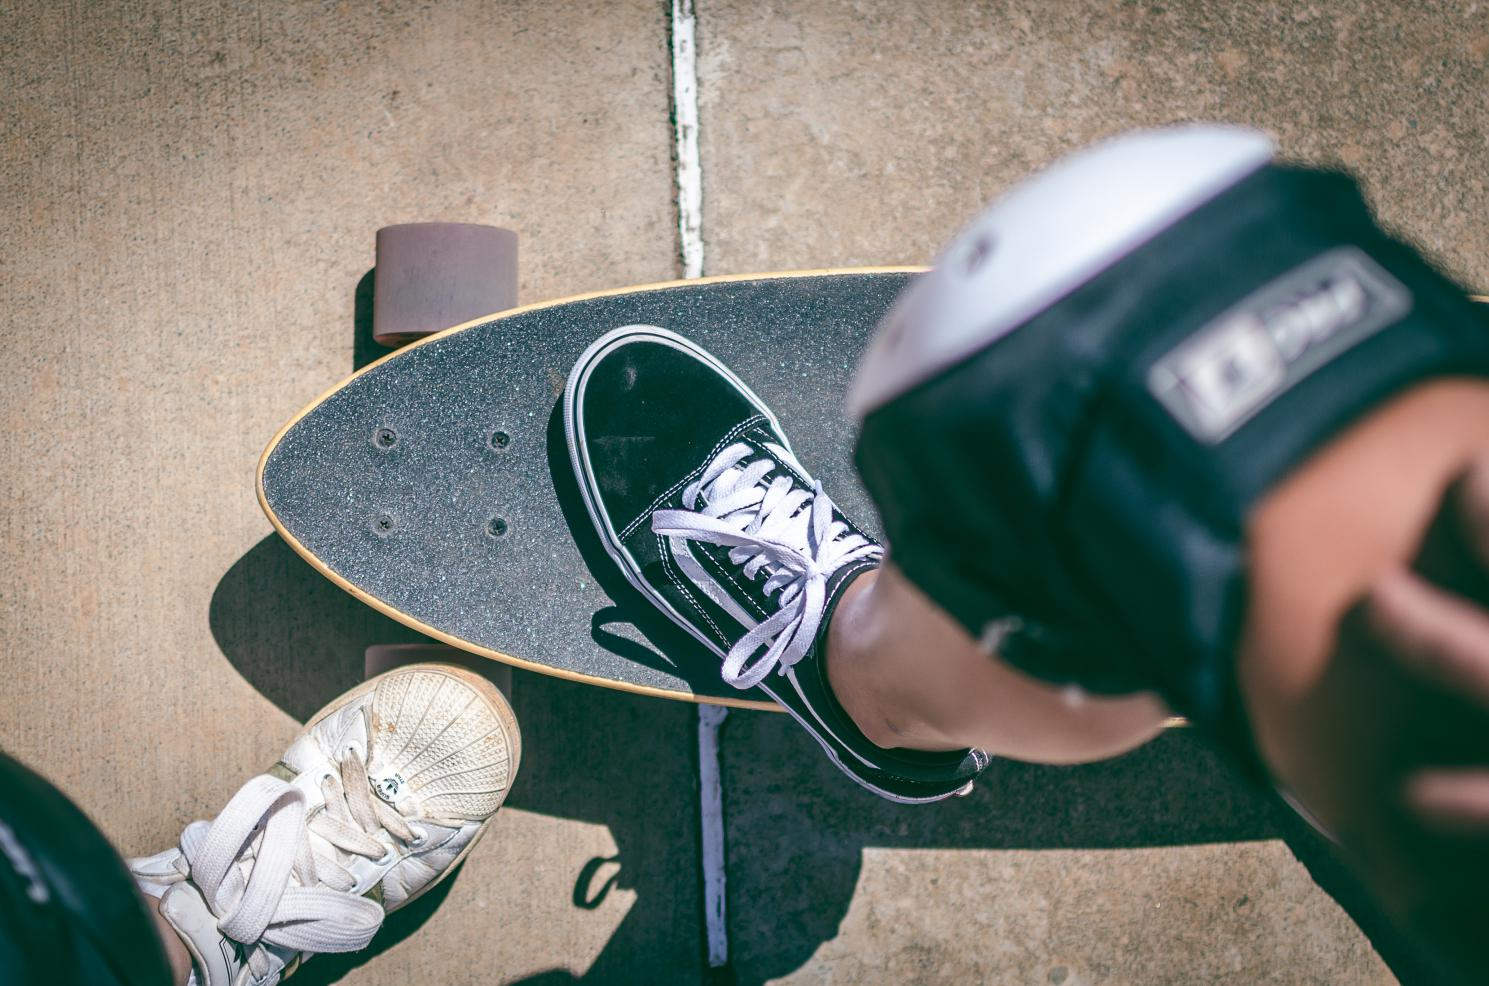 photography-of-person-on-skateboard-1018482